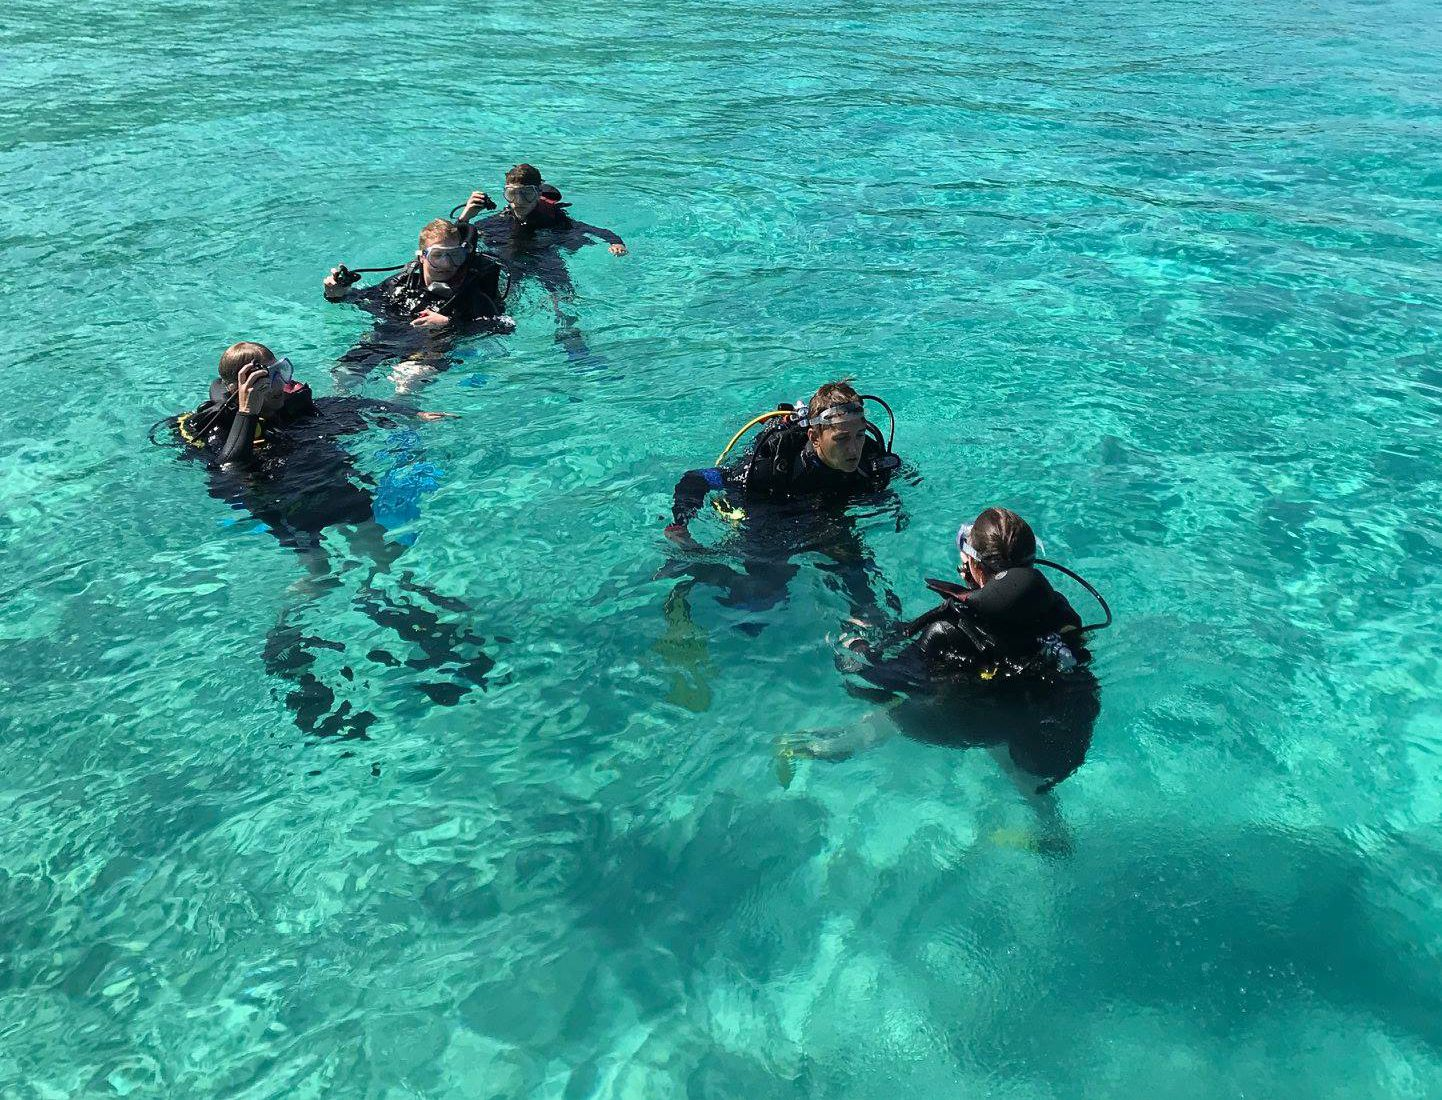 PADI Open Water Course in Malta: Learn to scuba dive in the Med